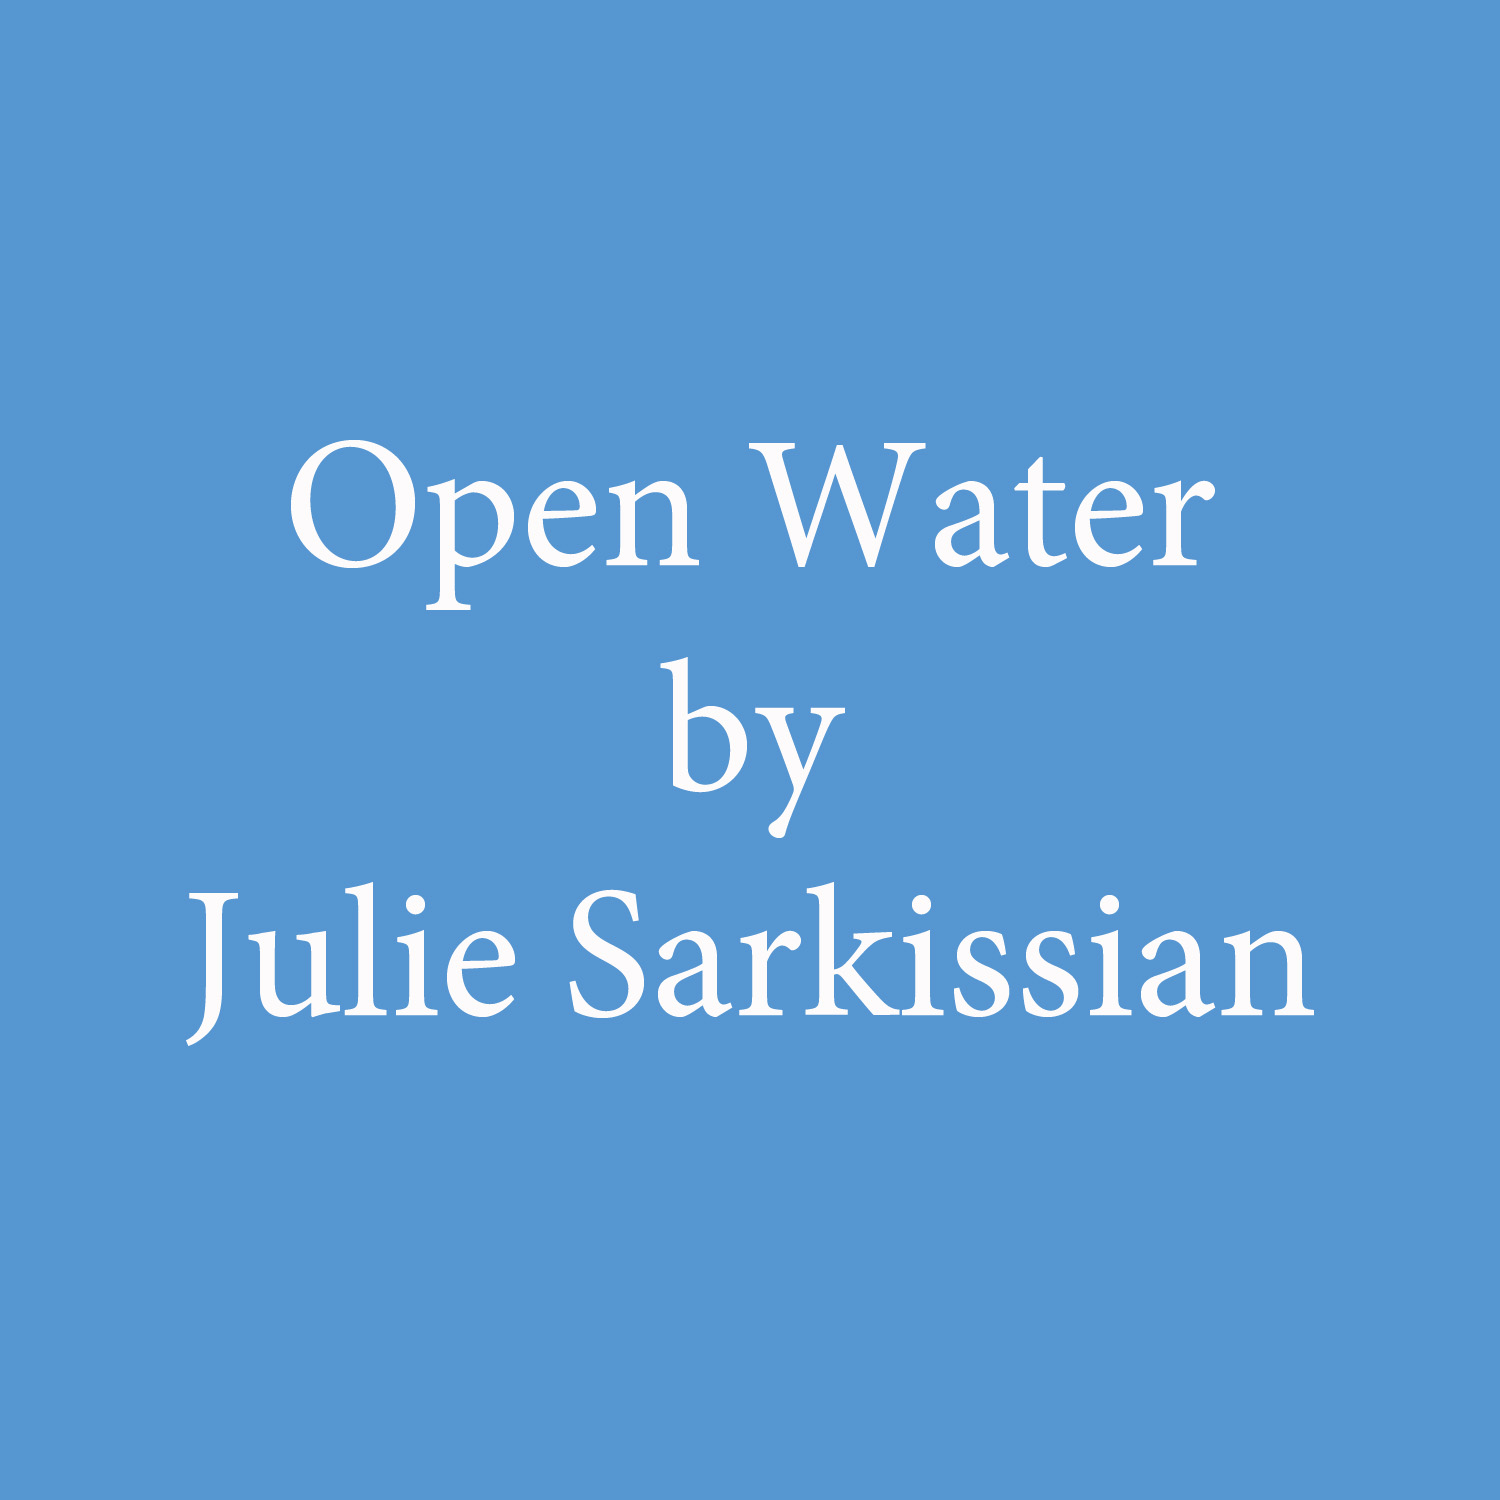 open water by julie sarkissian.jpg